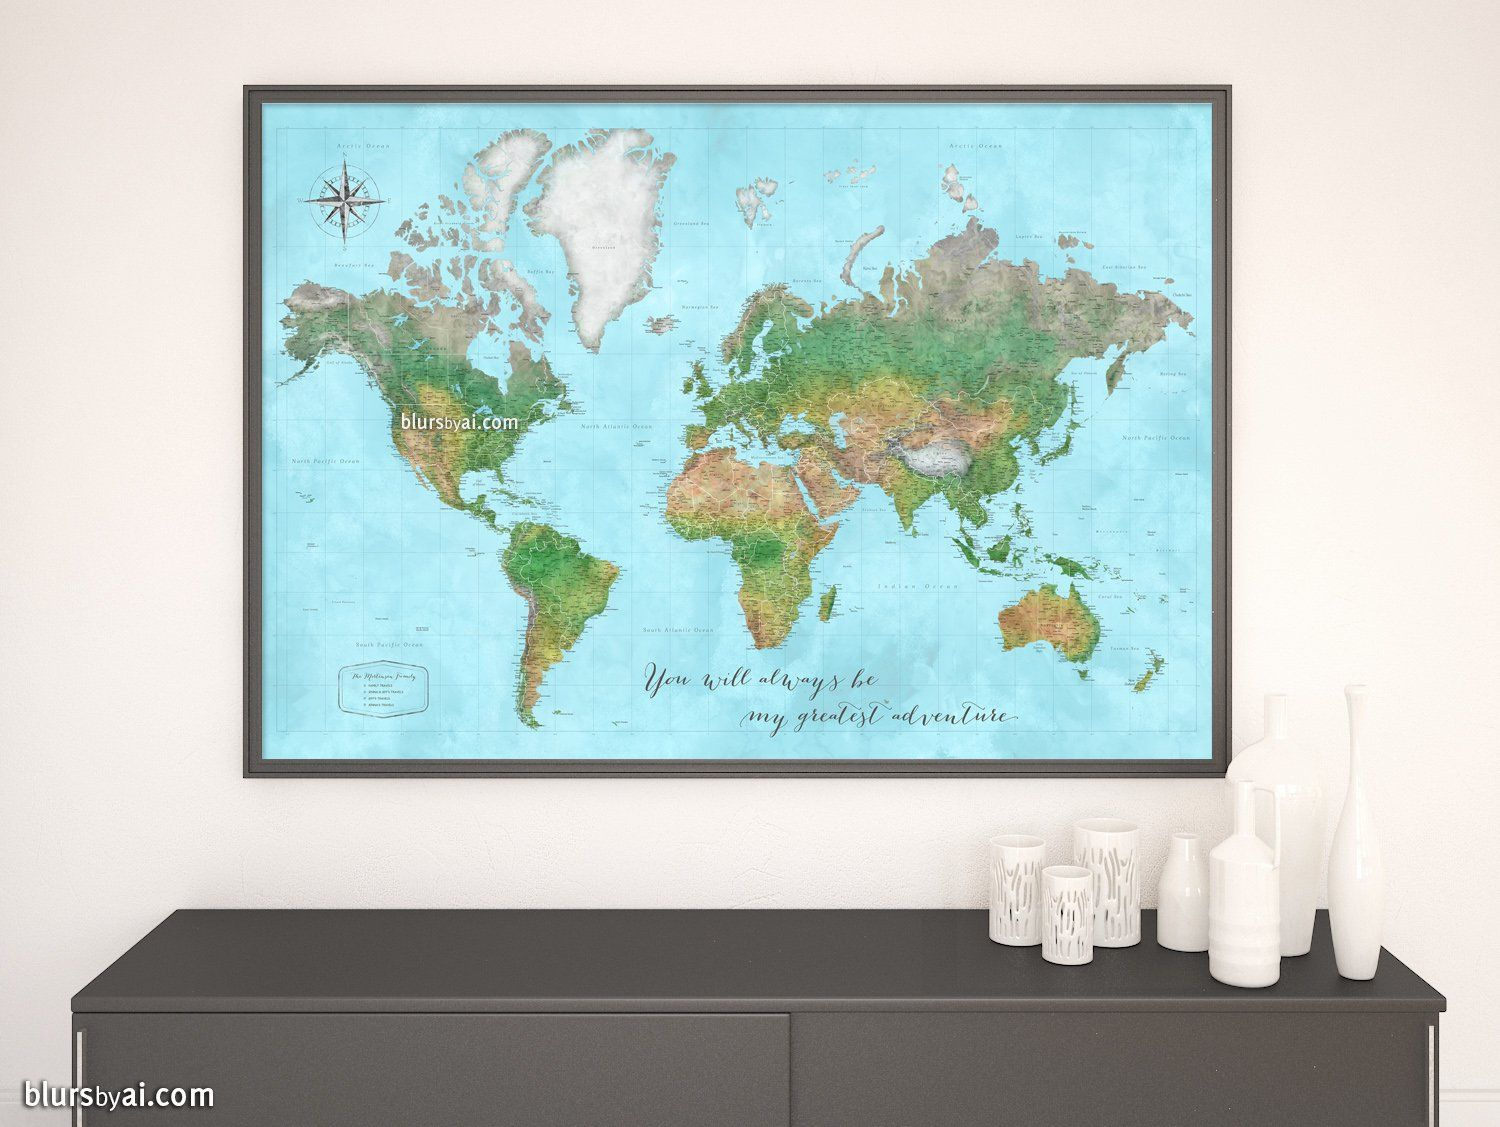 Most Detailed World Map.Custom World Map Print Highly Detailed Map With Cities In